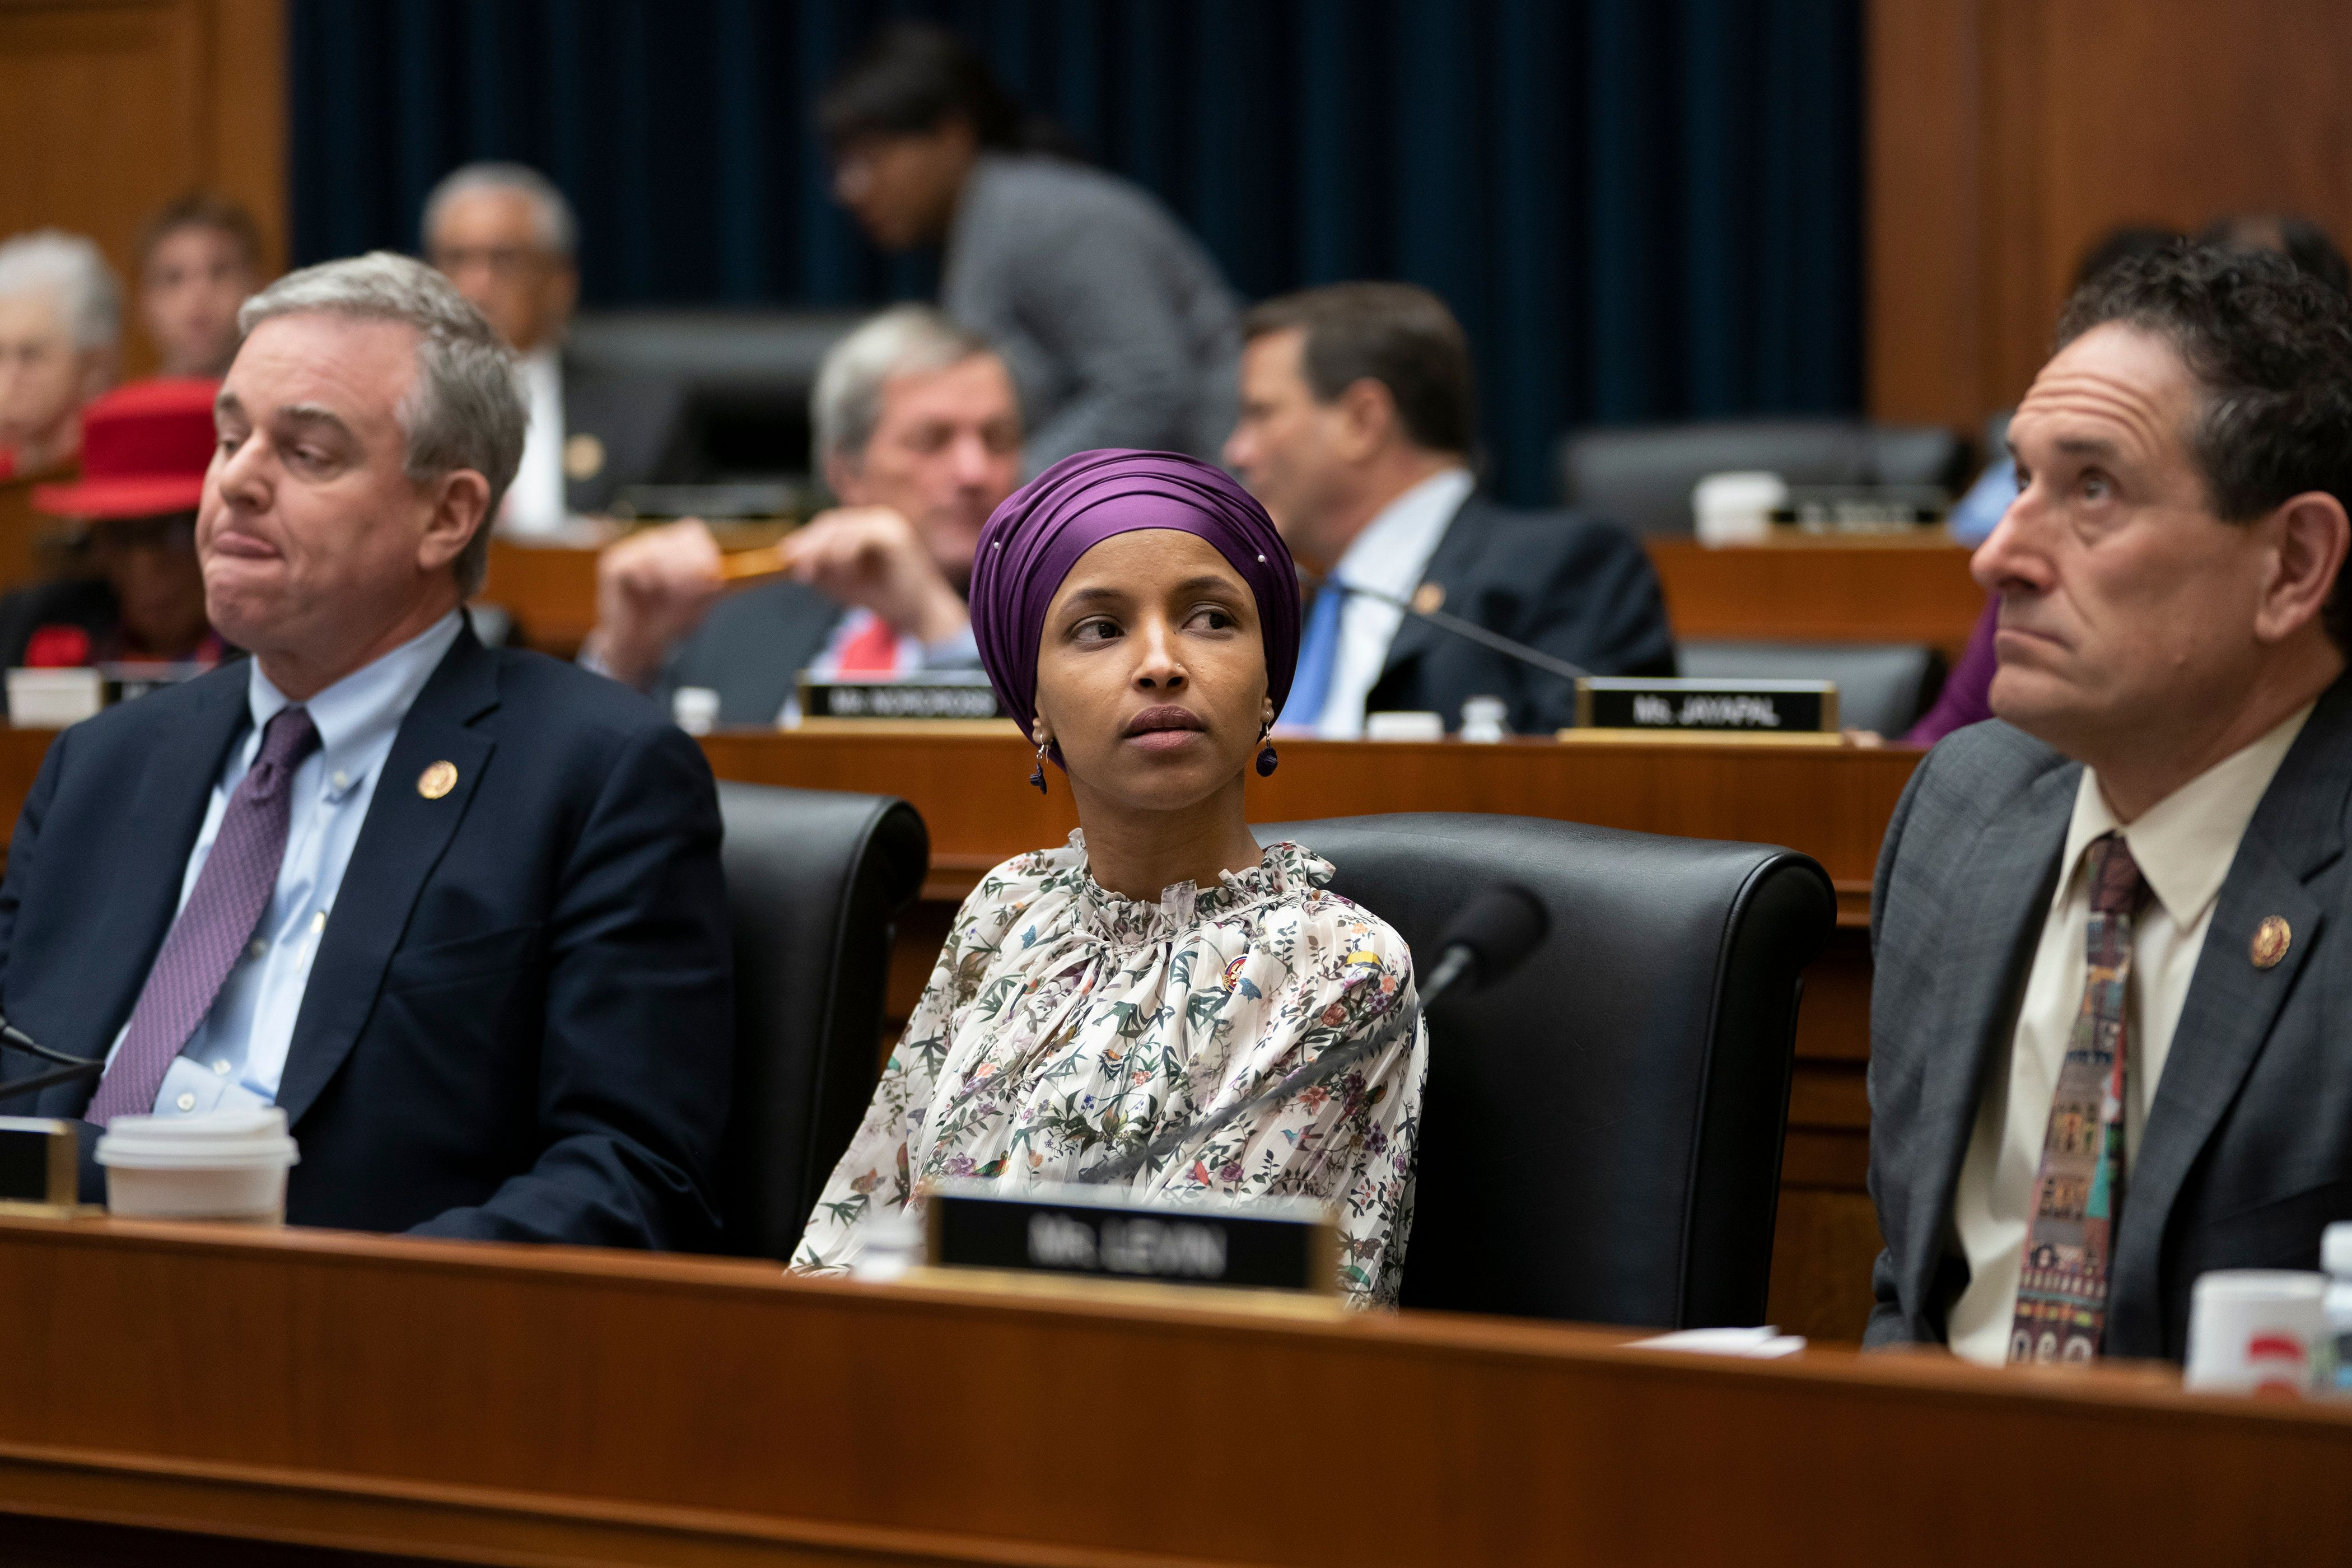 "Rep. Ilhan Omar, D-Minn., sits with fellow Democrats, Rep. David Trone, D-Md., left, and Rep. Mike Levin, D-Calif., right, on the House Education and Labor Committee during a bill markup, on Capitol Hill in Washington, Wednesday, March 6, 2019. Omar stirred controversy last week saying that Israel's supporters are pushing U.S. lawmakers to take a pledge of ""allegiance to a foreign country."" Omar is not apologizing for that remark, and progressives are supporting her. (AP Photo/J. Scott Applewhite)"